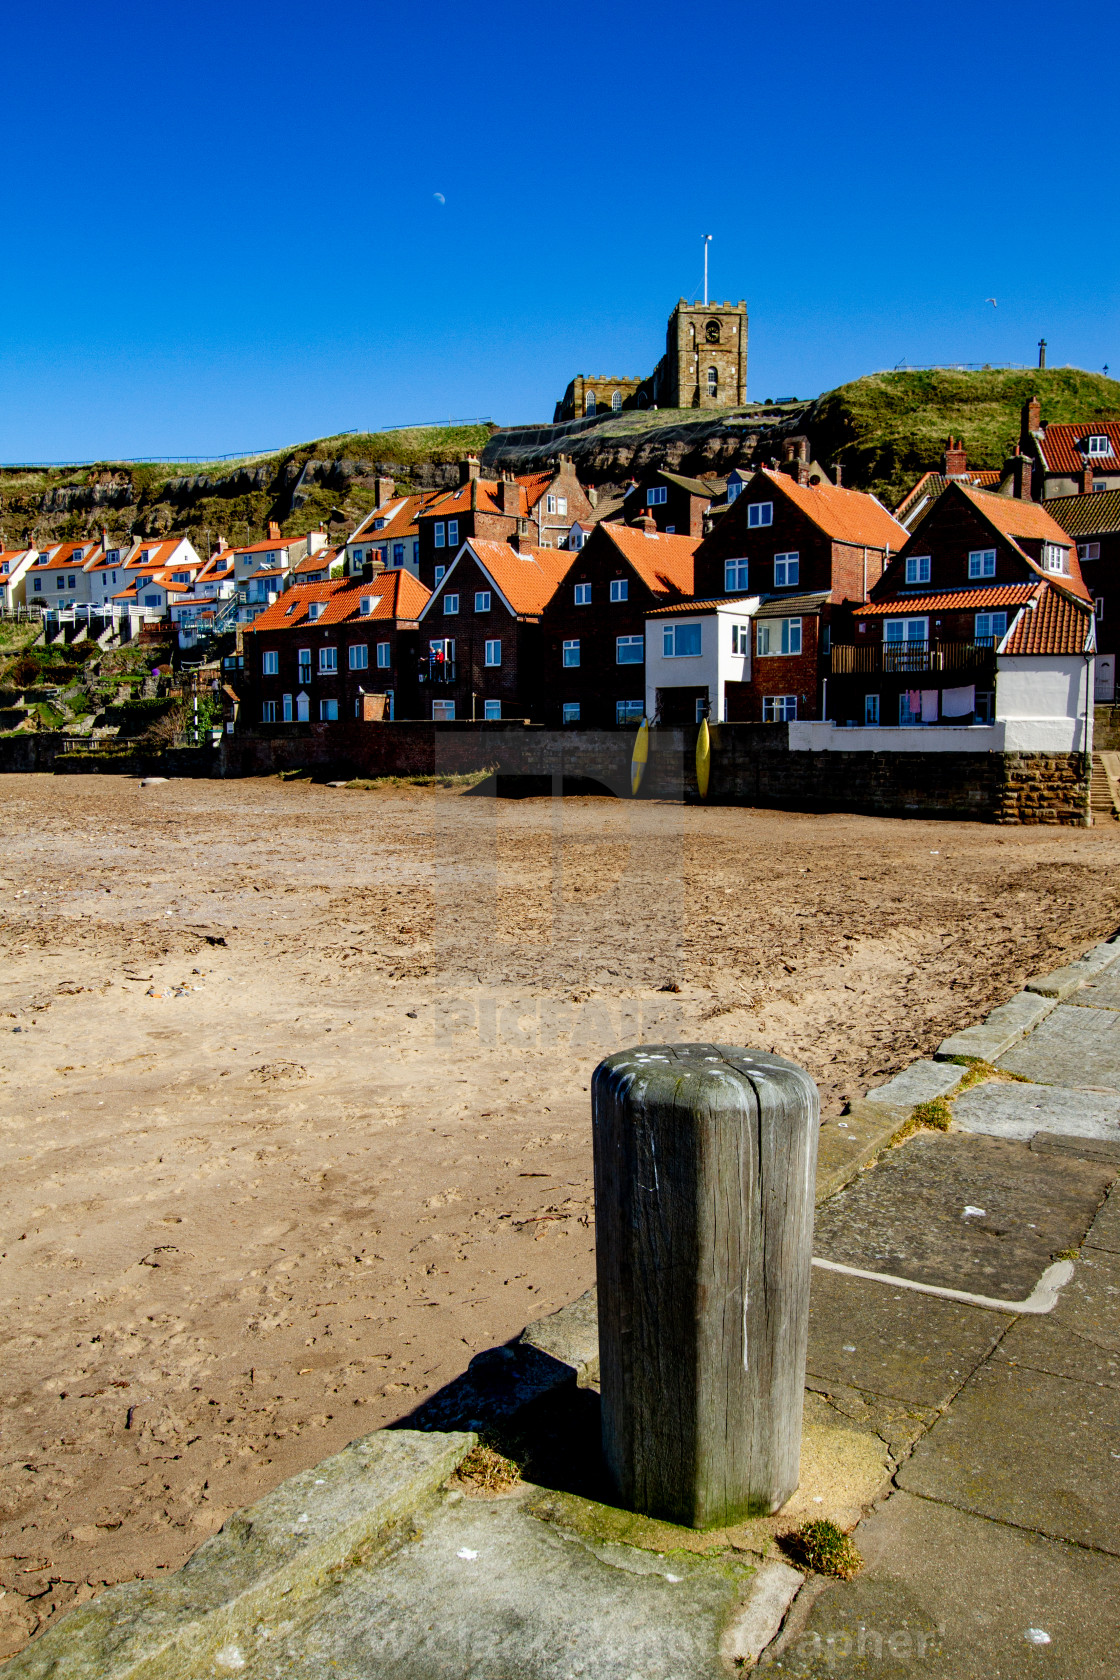 """Whitby,UK,Yorkshire,East coast, Mooring Post on Tate Hill Pier. Collier Hope Beach and St Mary's Church in the Background. Photographed April 2013."" stock image"